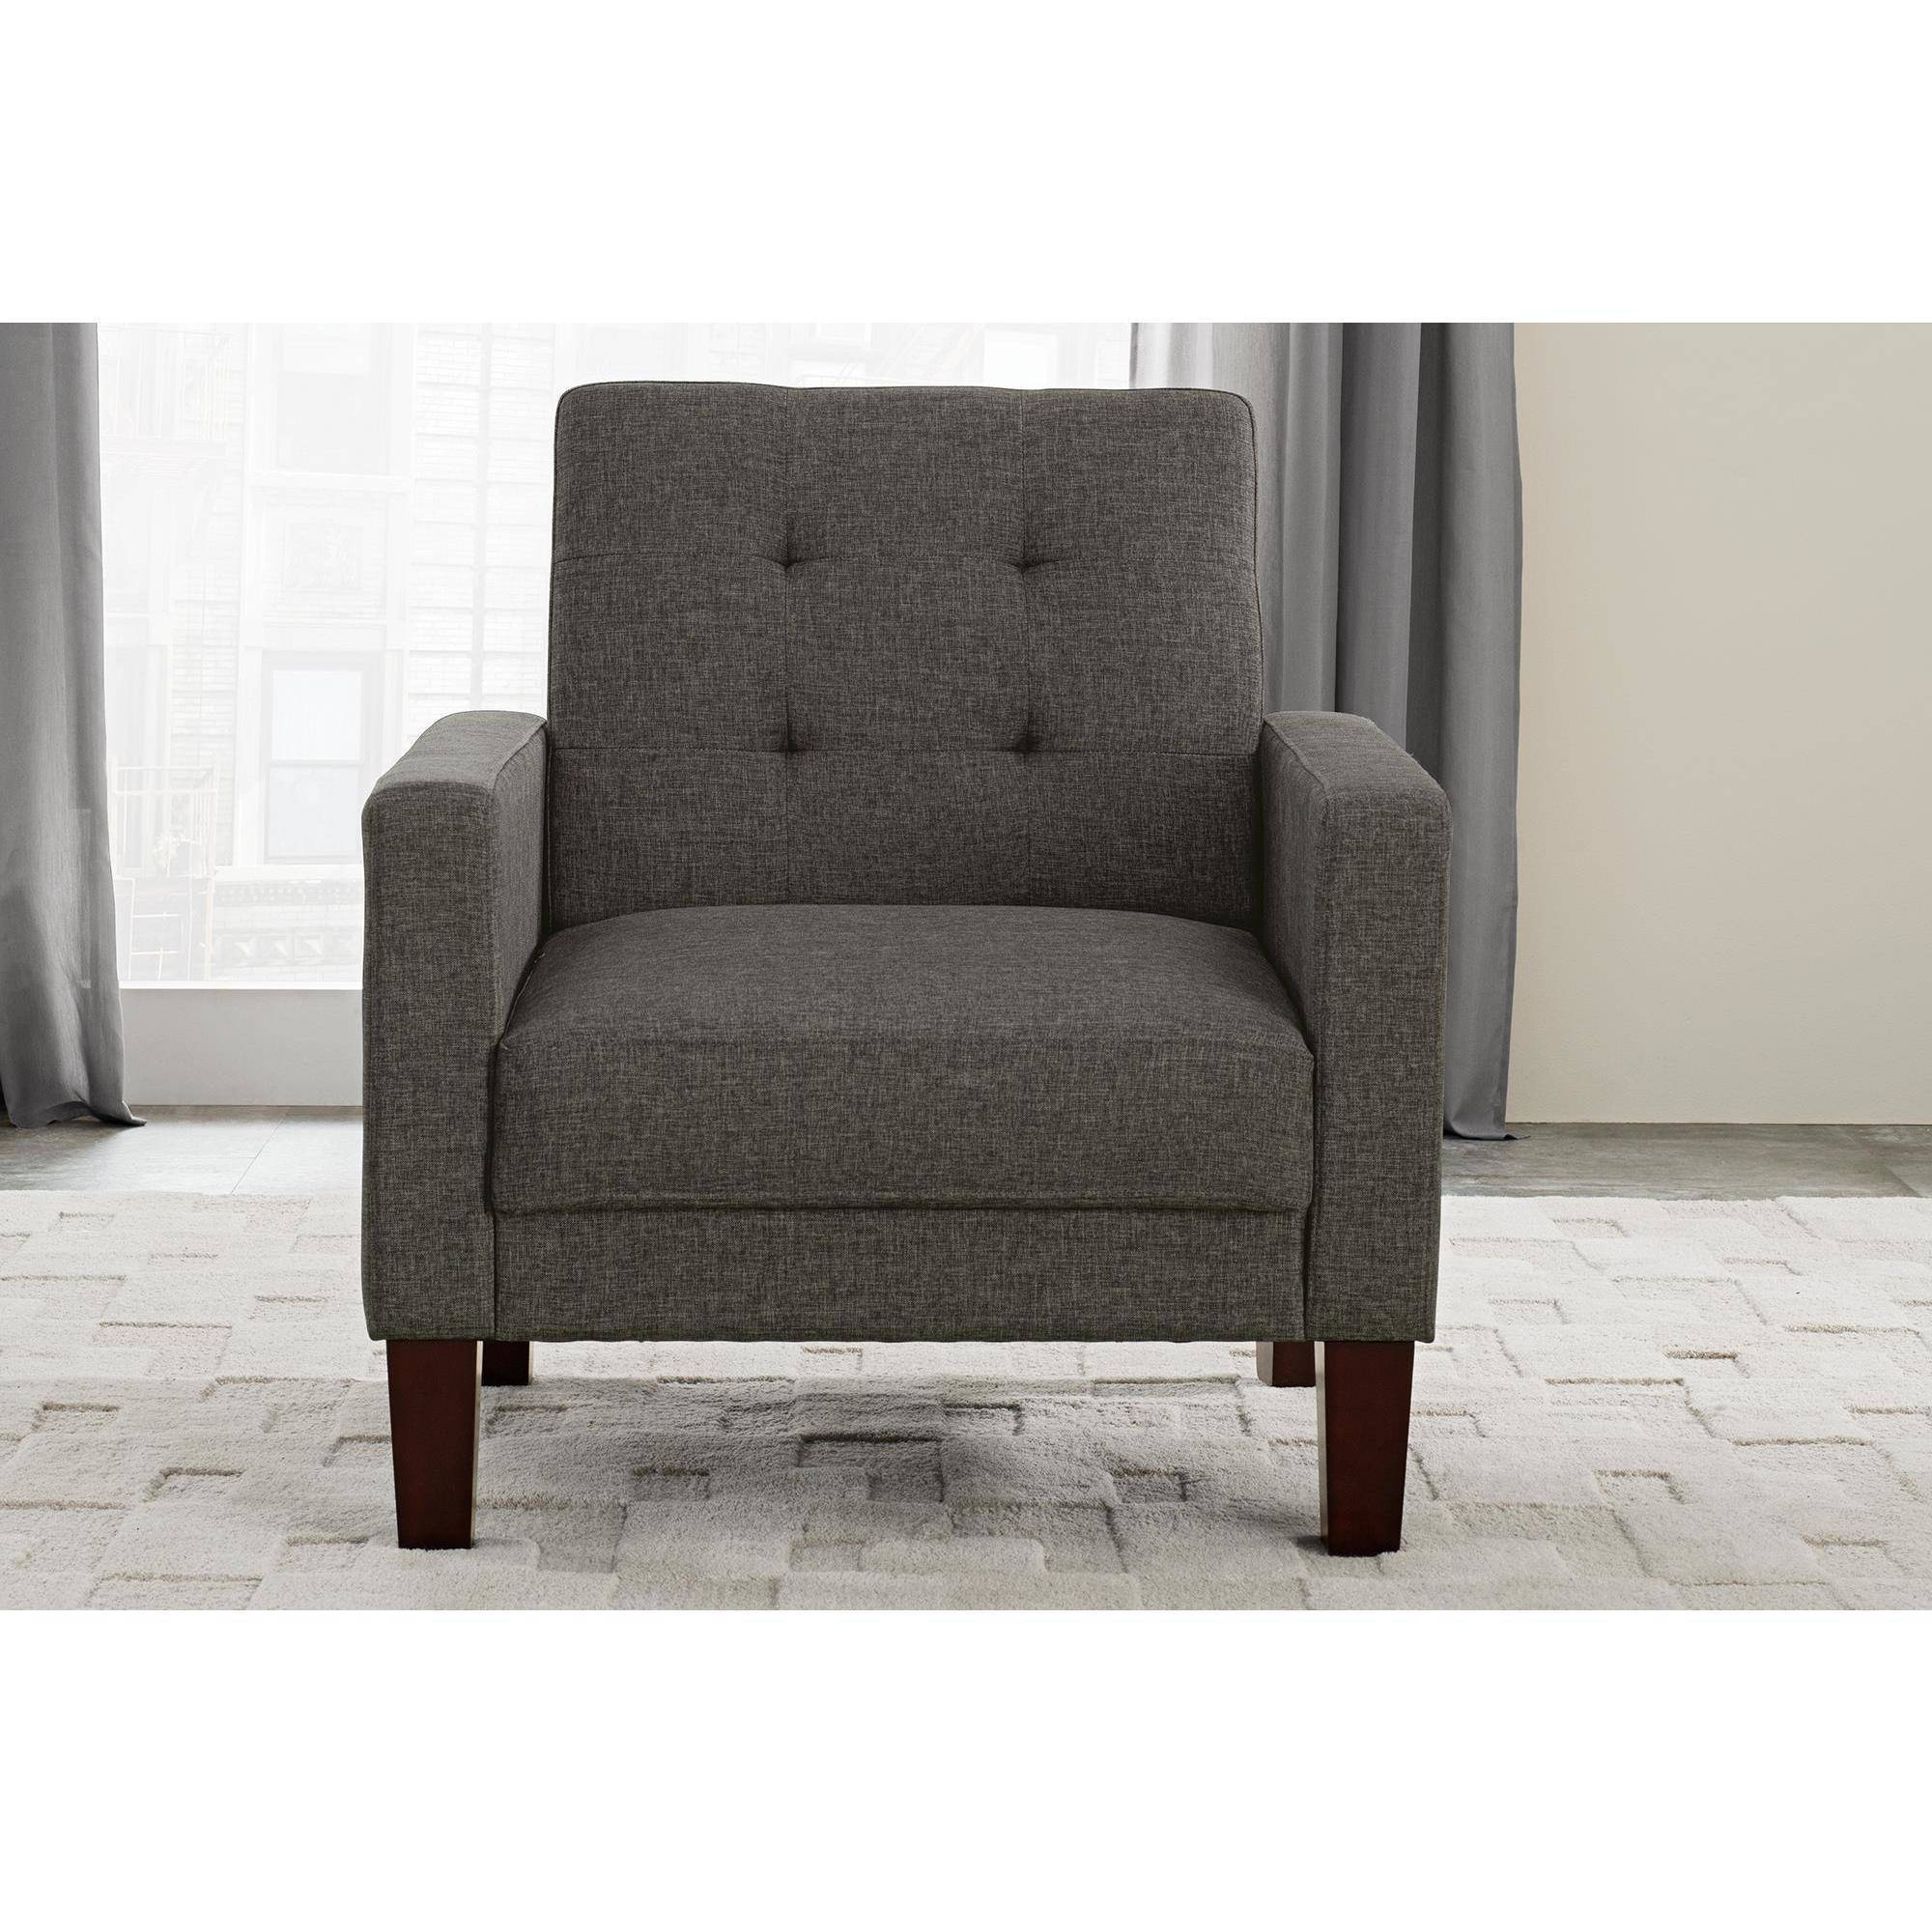 wood frame accent chairs. Accent-Chair-For-Living-Room-Gray-Linen-Upholstery- Wood Frame Accent Chairs H